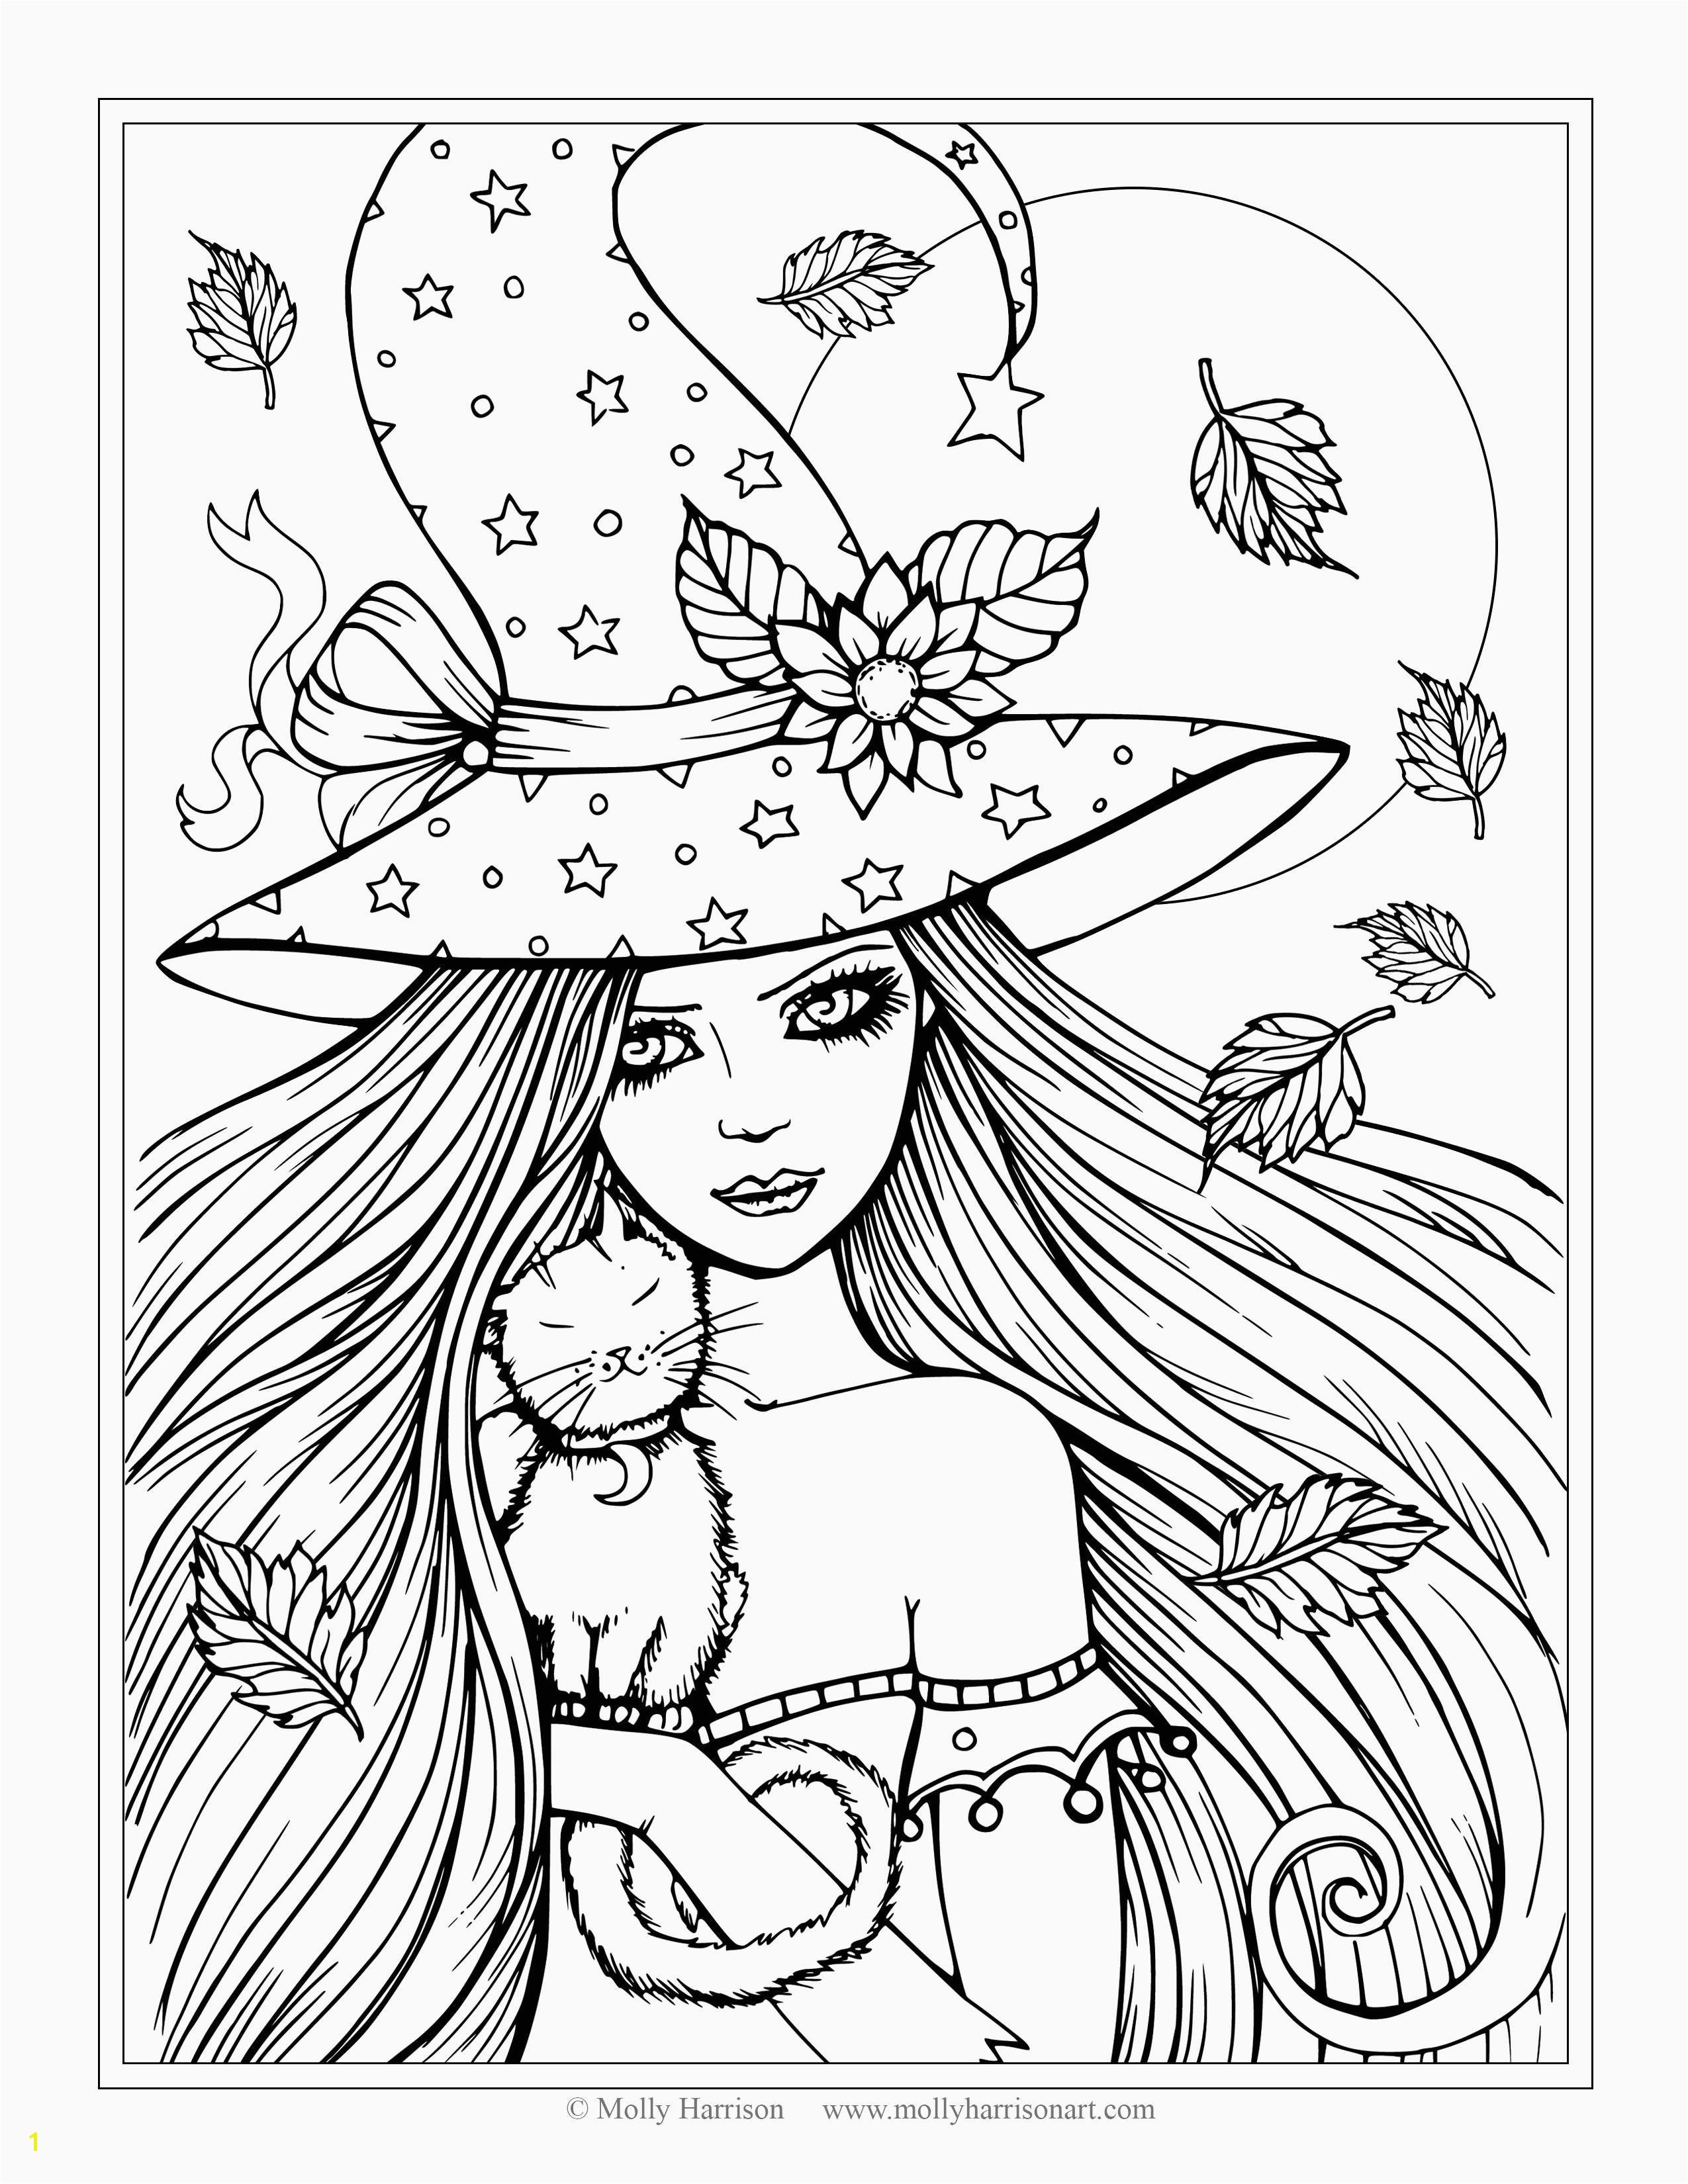 Free Kids Coloring Pages Lovely Free Coloring Pages Elegant Crayola Pages 0d Archives Se Telefonyfo